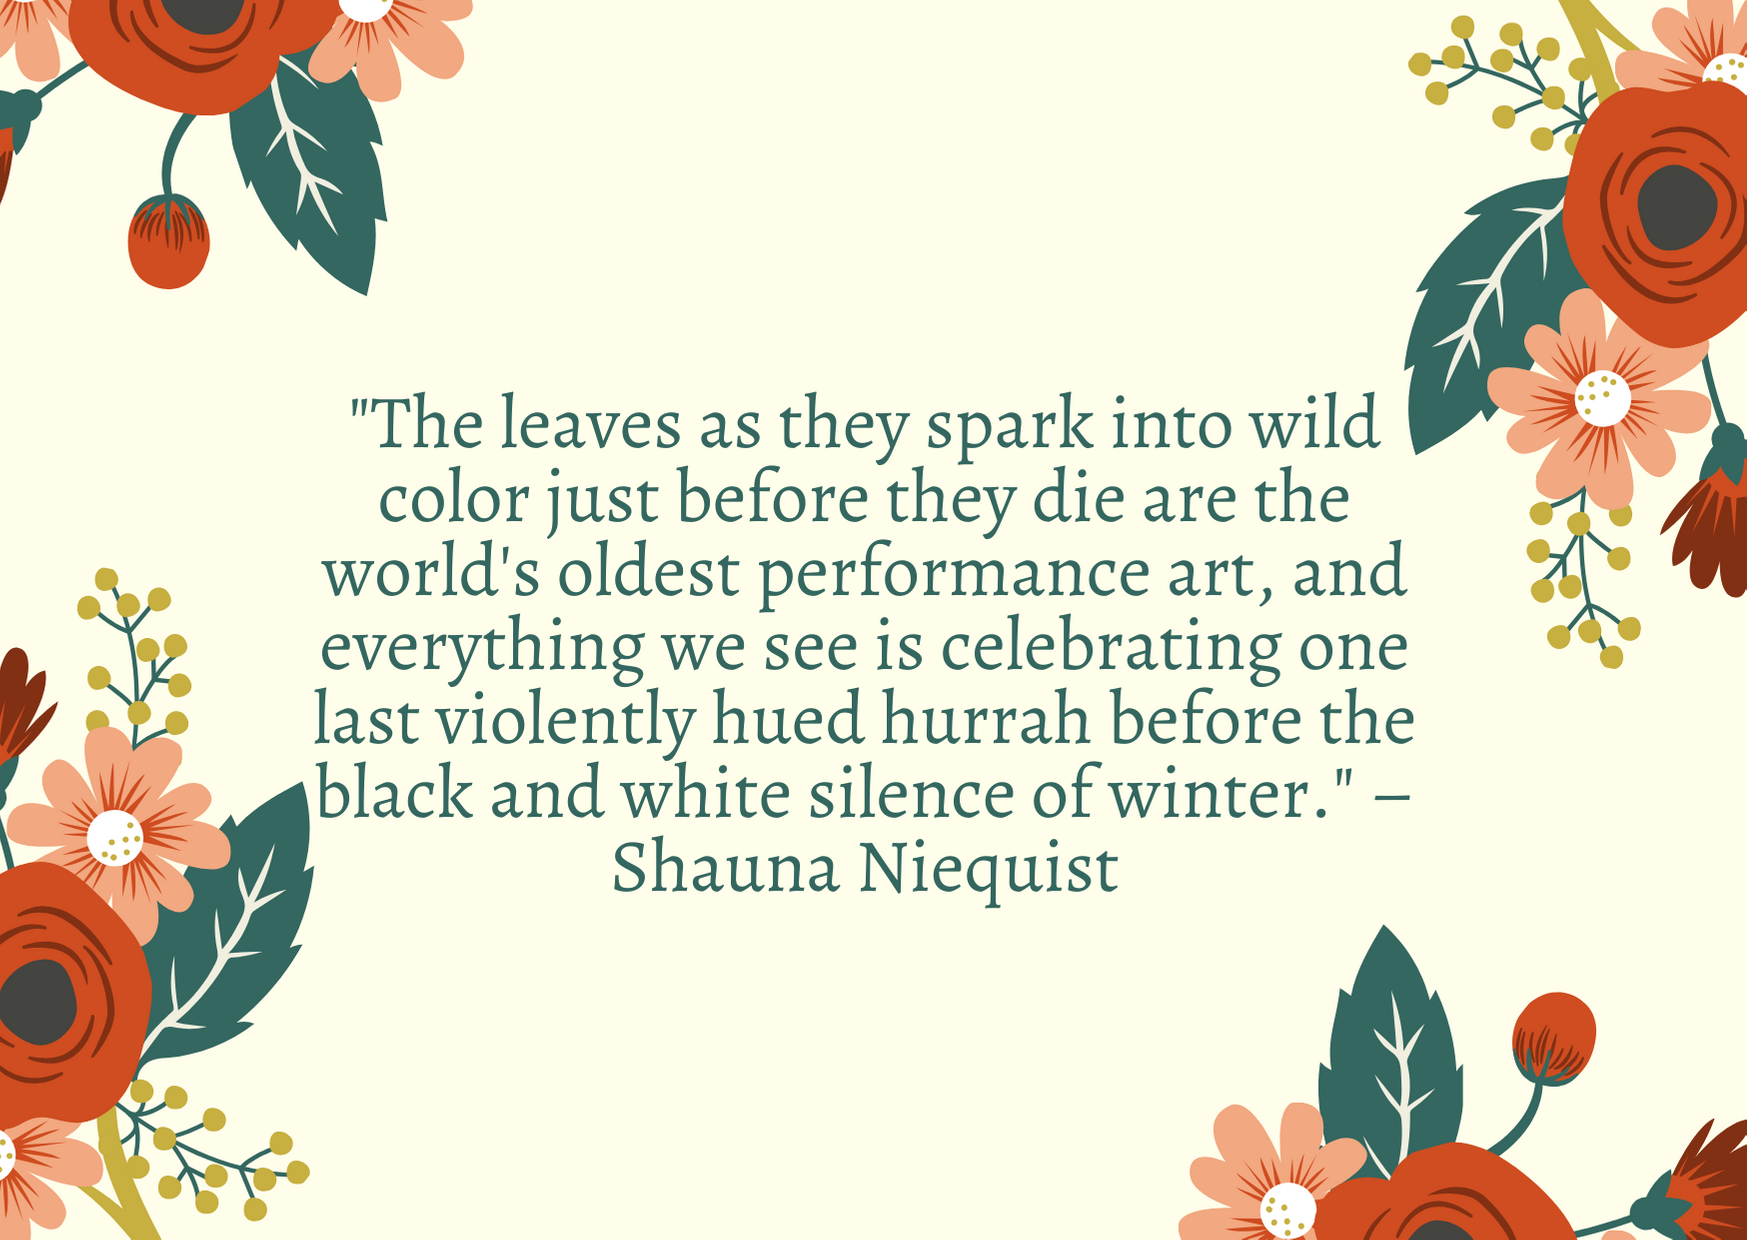 """The leaves as they spark into wild color just before they die are the world's oldest performance art, and everything we see is celebrating one last violently hued hurrah before the black and white silence of winter."" – Shauna Niequist"